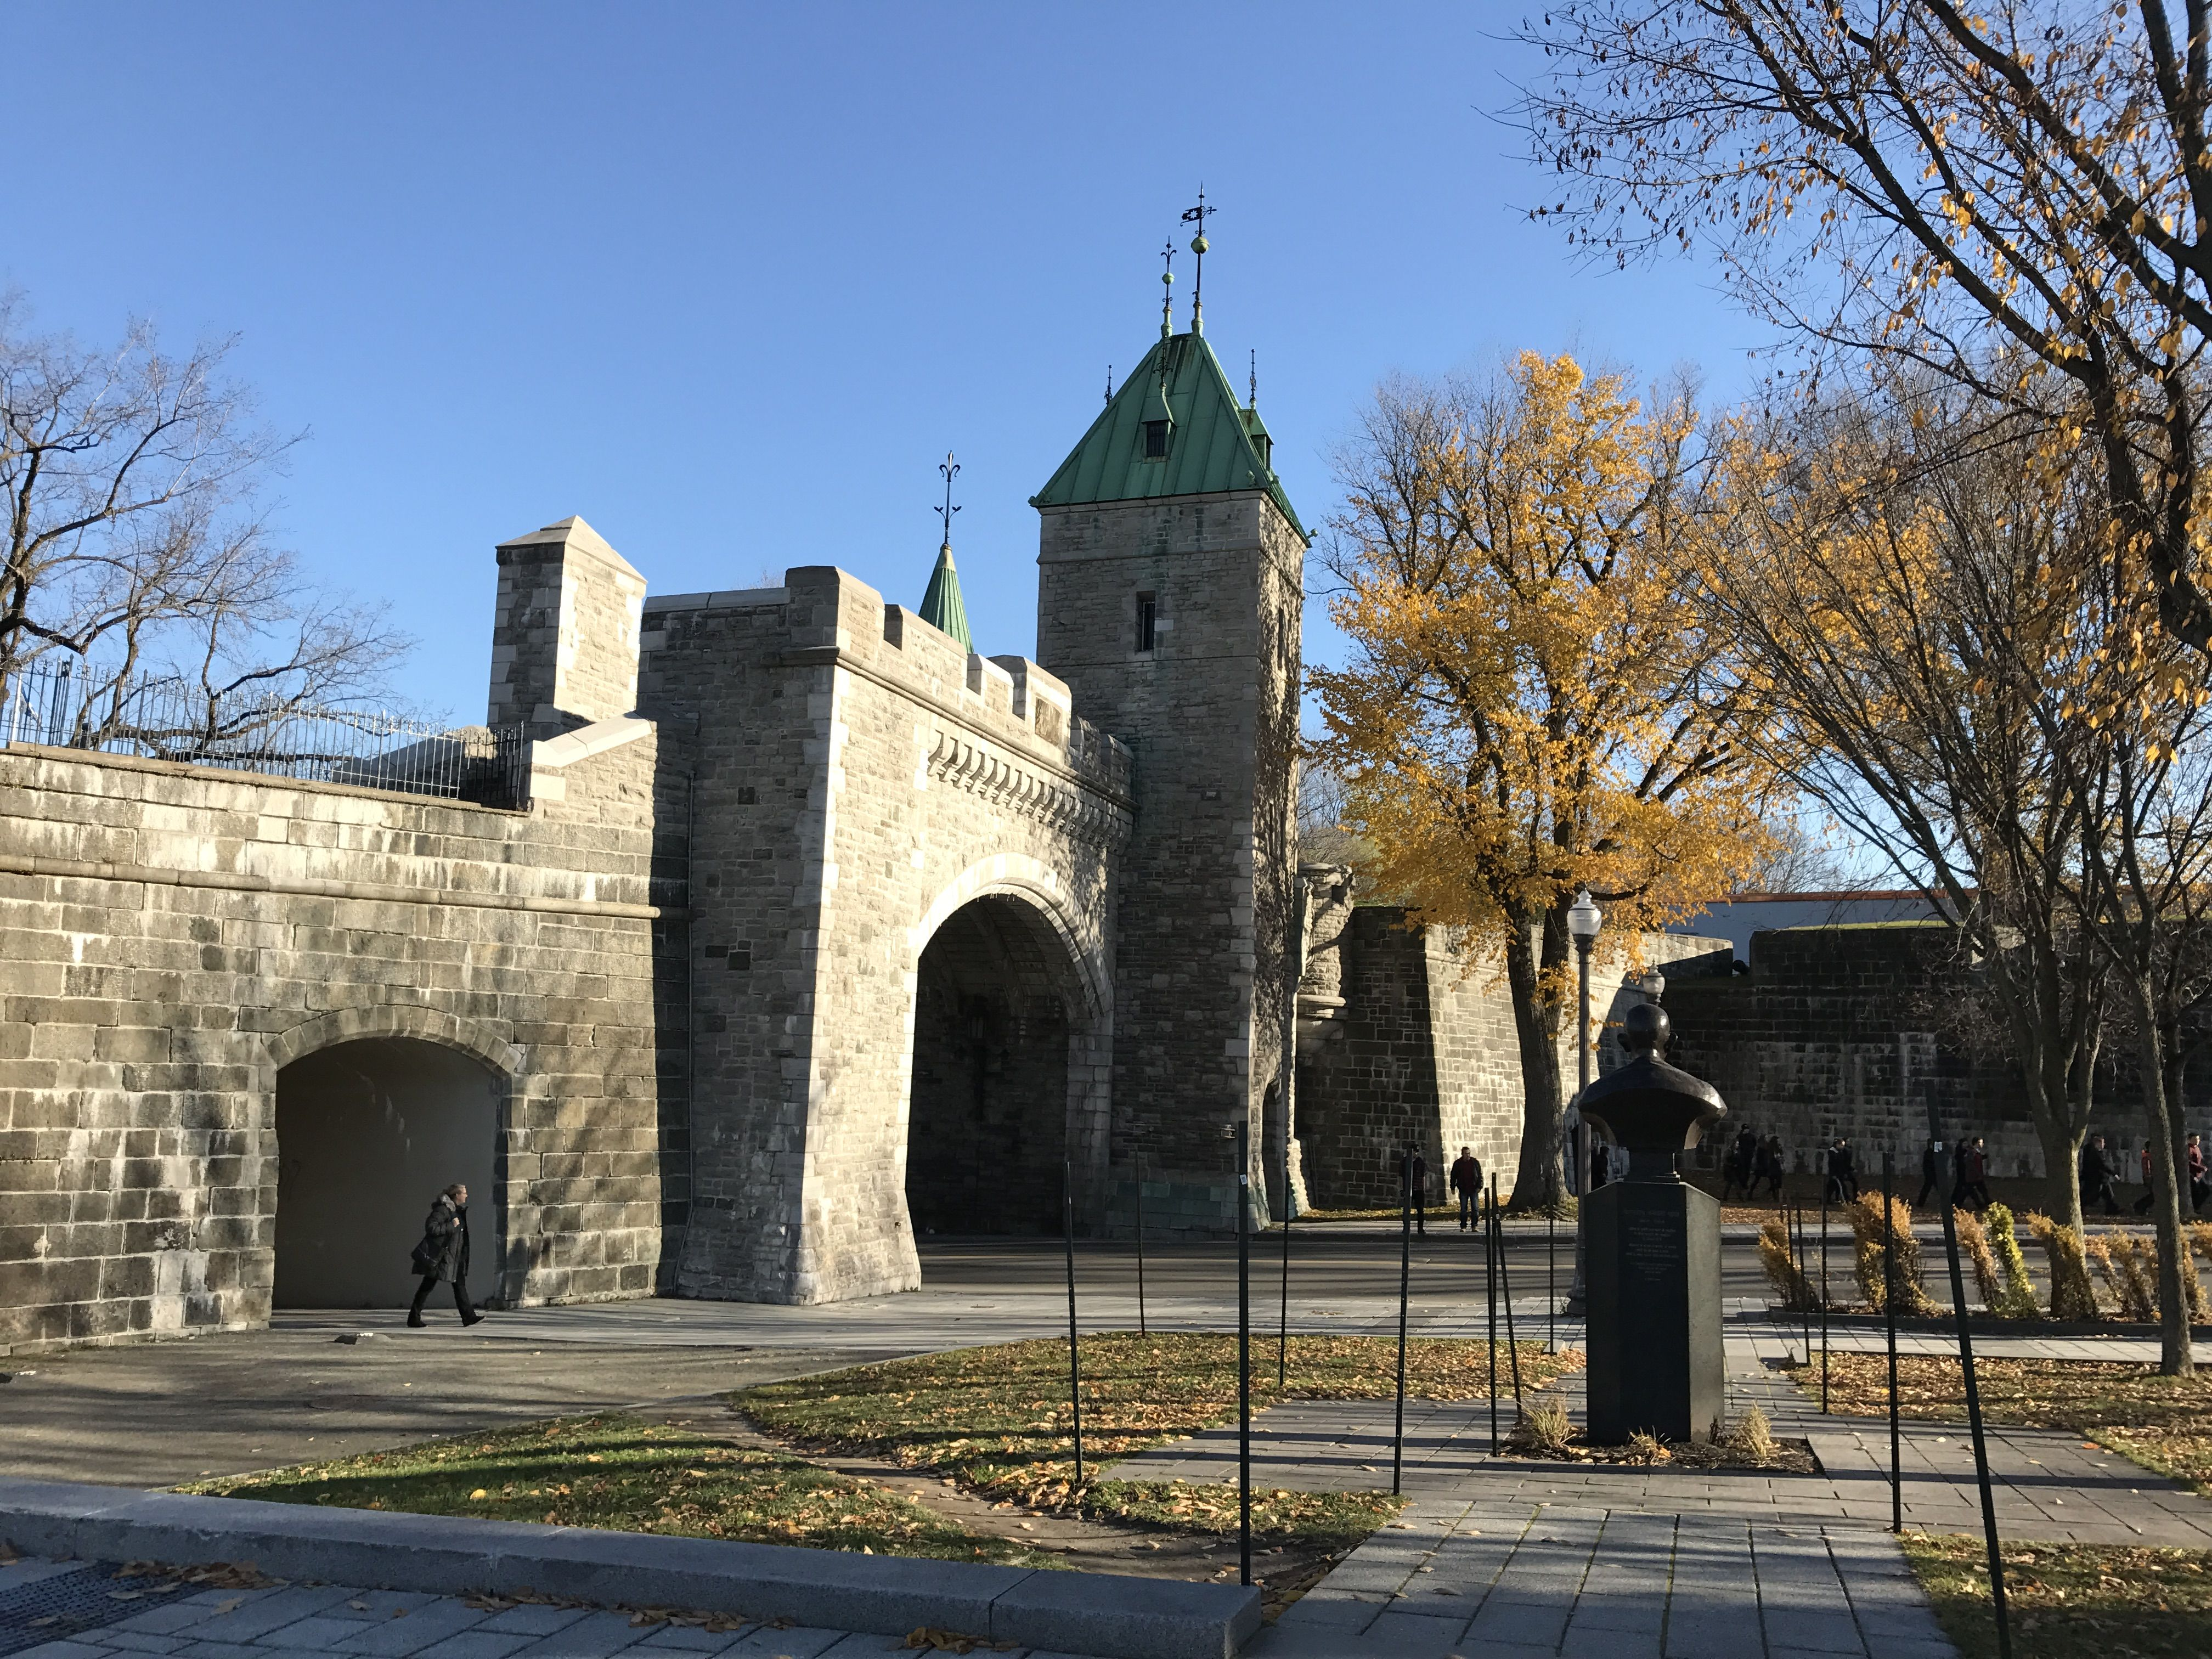 I was told everything cool is inside the wall of Old Quebec City.